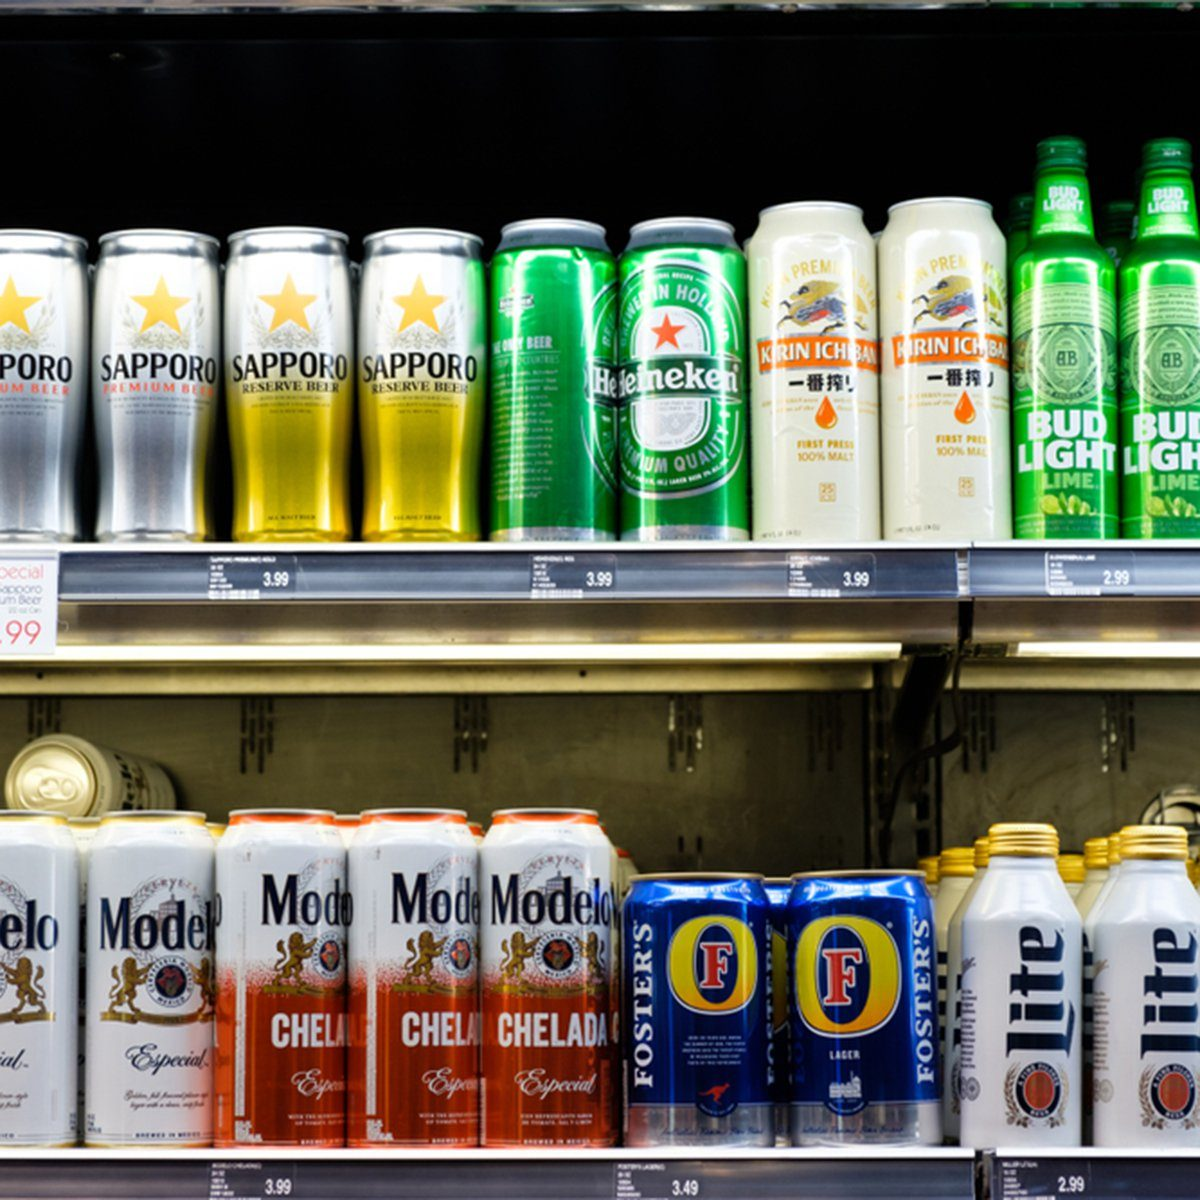 Wide selection of domestic and imported beer on shelf display in a convenient store